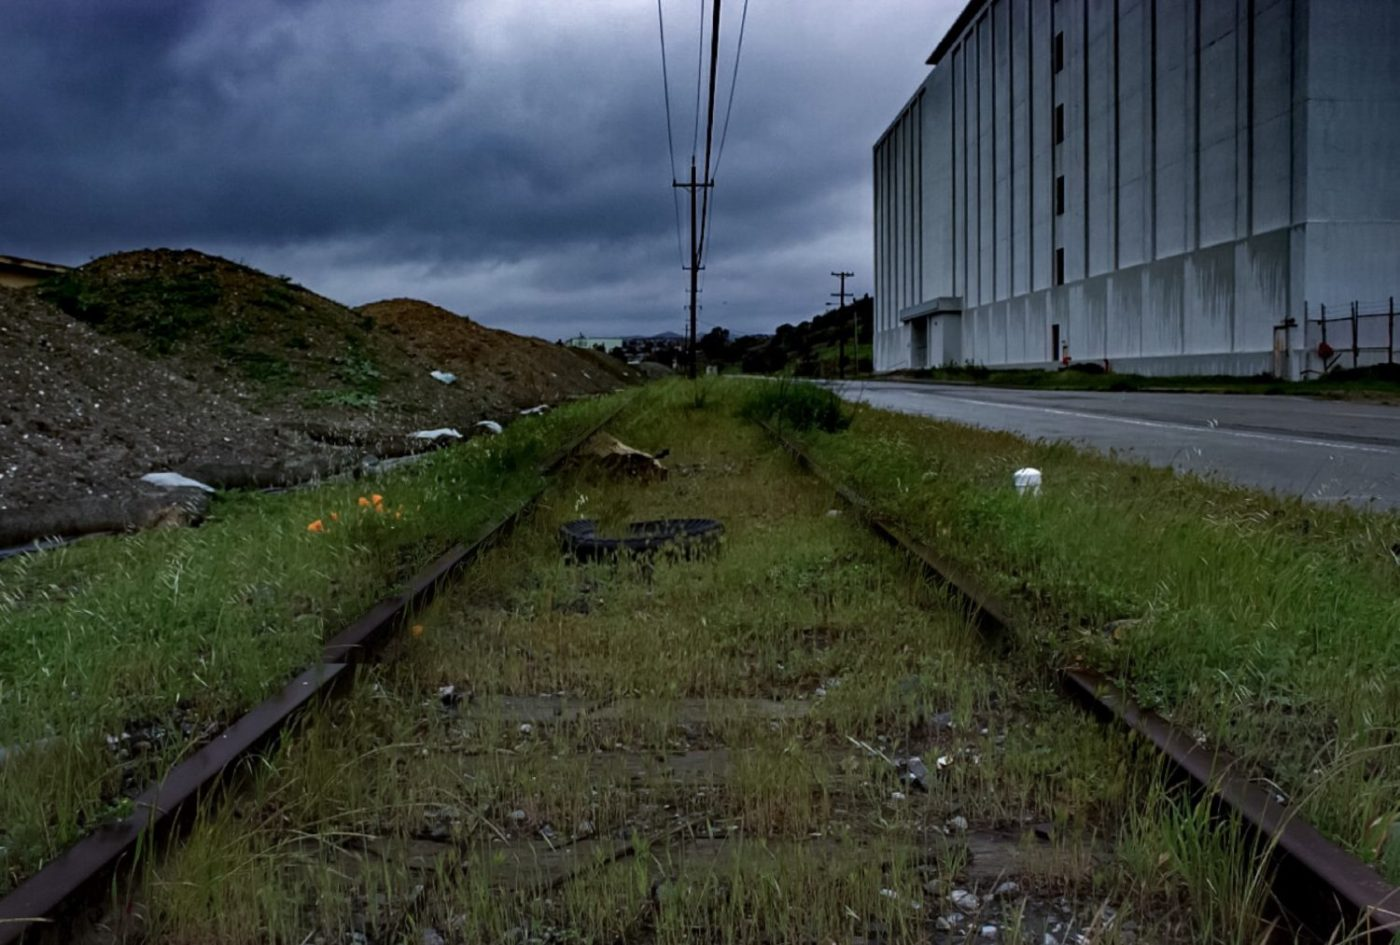 Hunters-Point-Shipyard-Bldg-815-windowless-former-Naval-Radiological-Defense-Laboratory-NRDL-headquarters-2016-by-Devon-Kelley-1400x945, 2020 hindsight on dirty deeds done dirt cheap at Hunters Point, Local News & Views